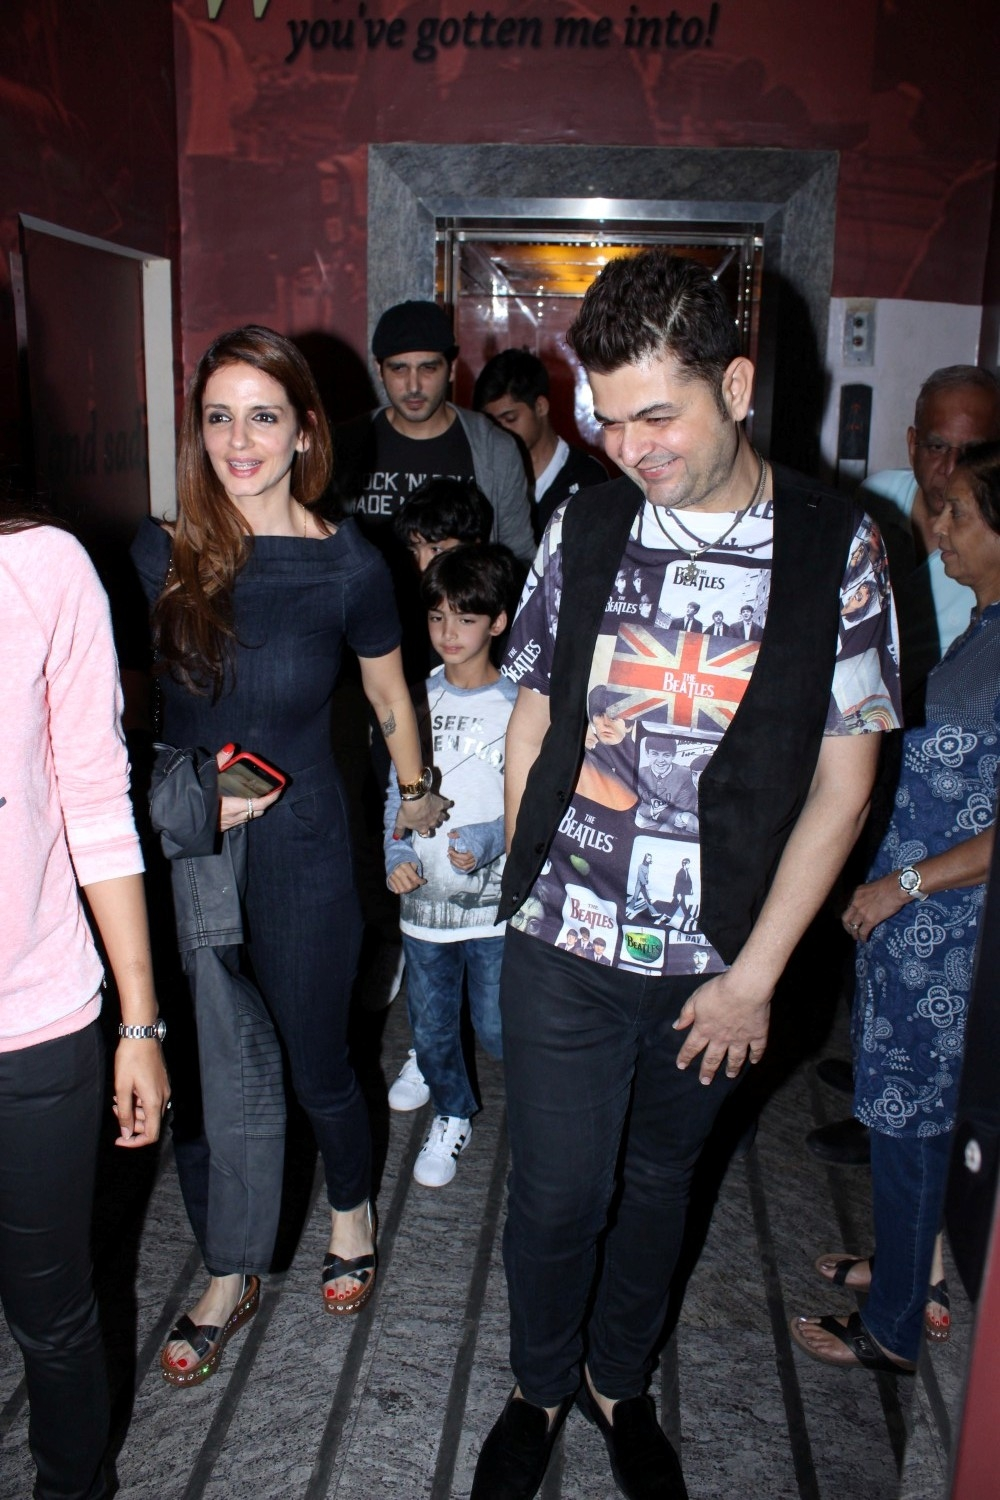 Mumbai: Photographe Dabboo Ratnani and Sussanne Khan during special sreening of film Kaabil in Mumbai on Jan 22, 2017. (Photo: (IANS)